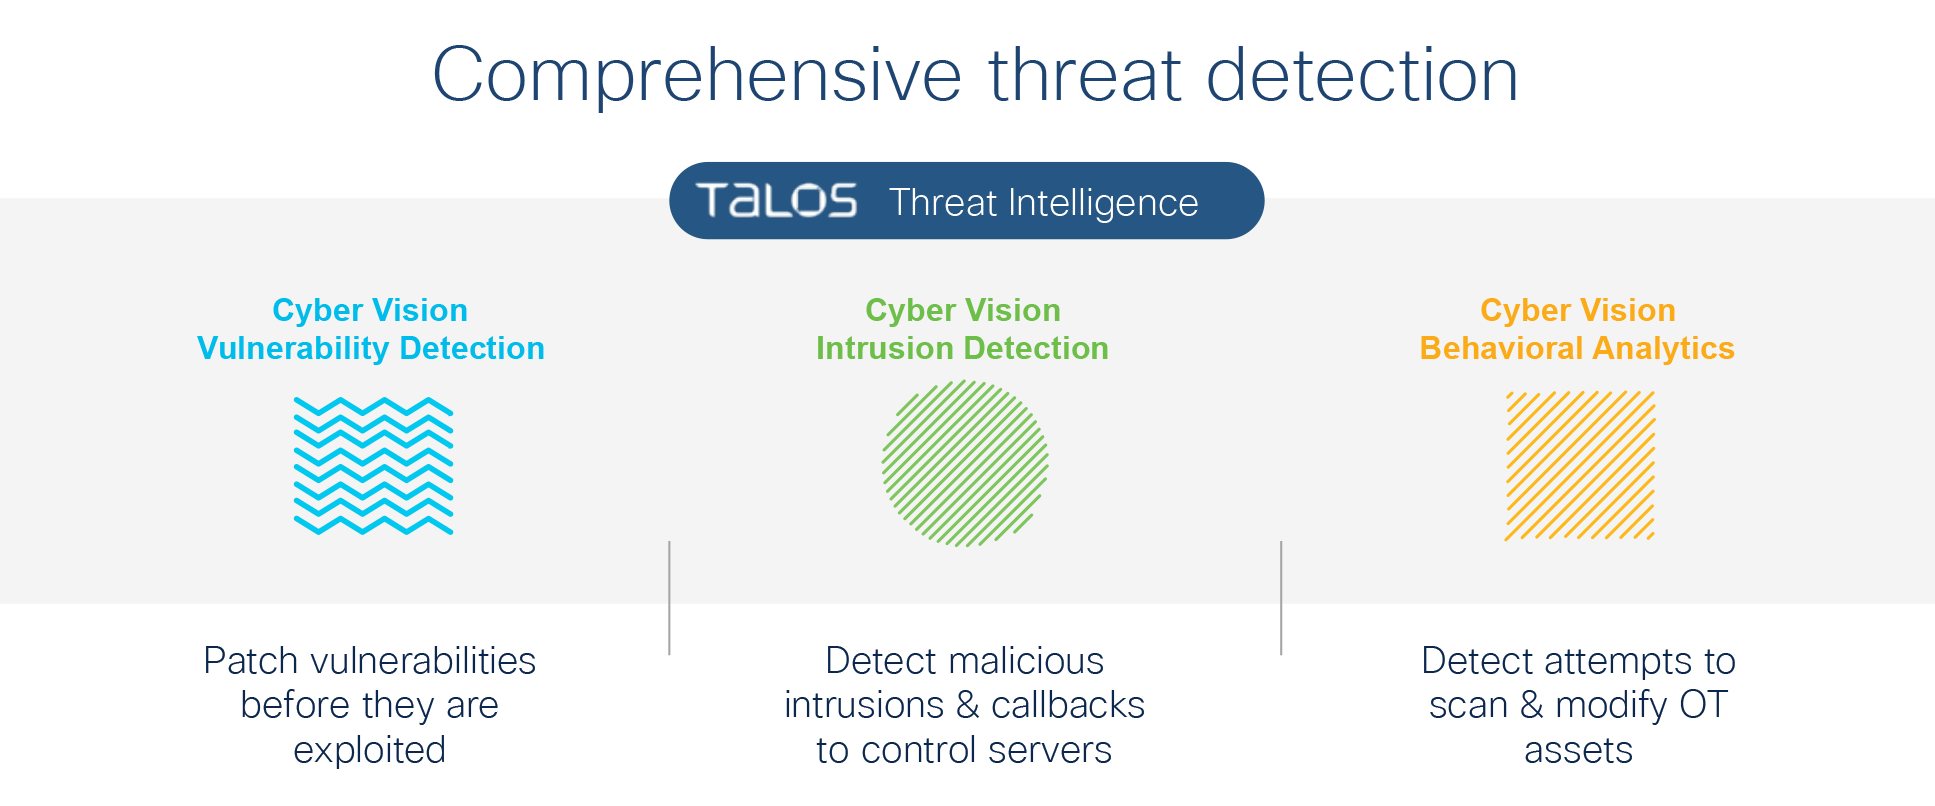 Detecting and remediating threats